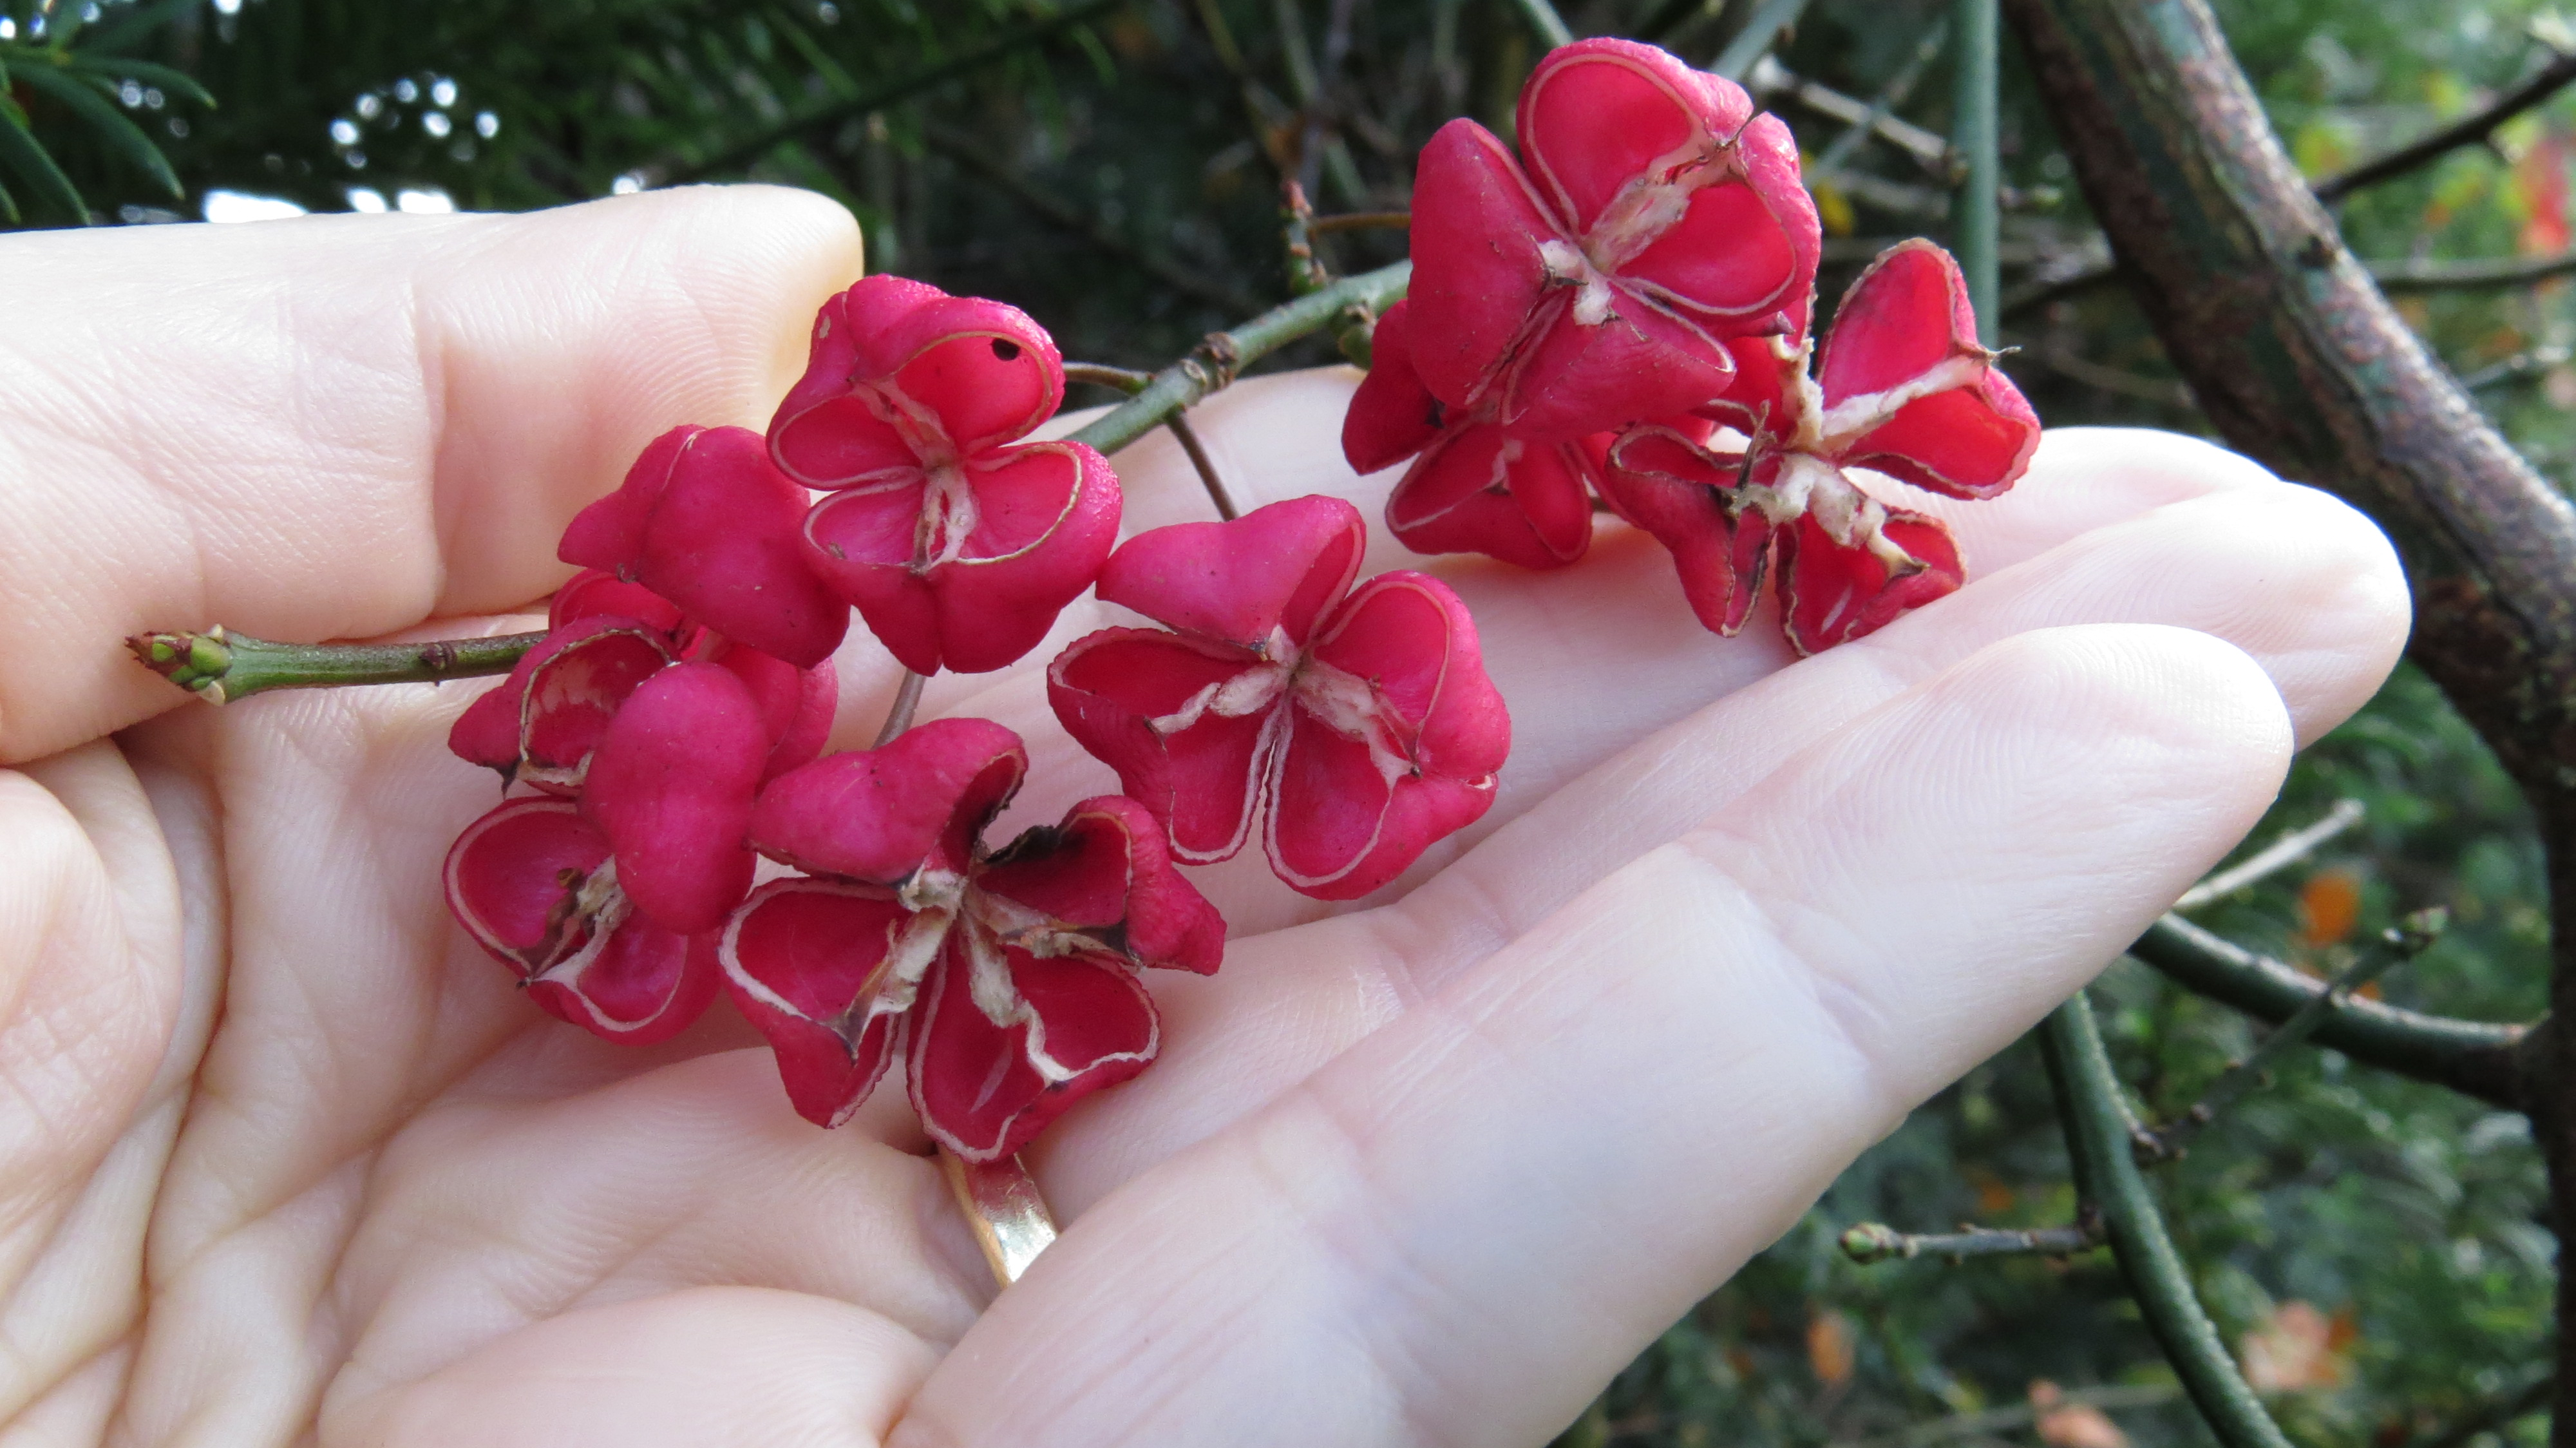 Reputable London Past To Provide Wood Objects Such As Knitting Bird Pipes November 2016 Bug Woman Adventures Spindle Is A Native Plant Which Was Cultivated houzz 01 Petals From The Past